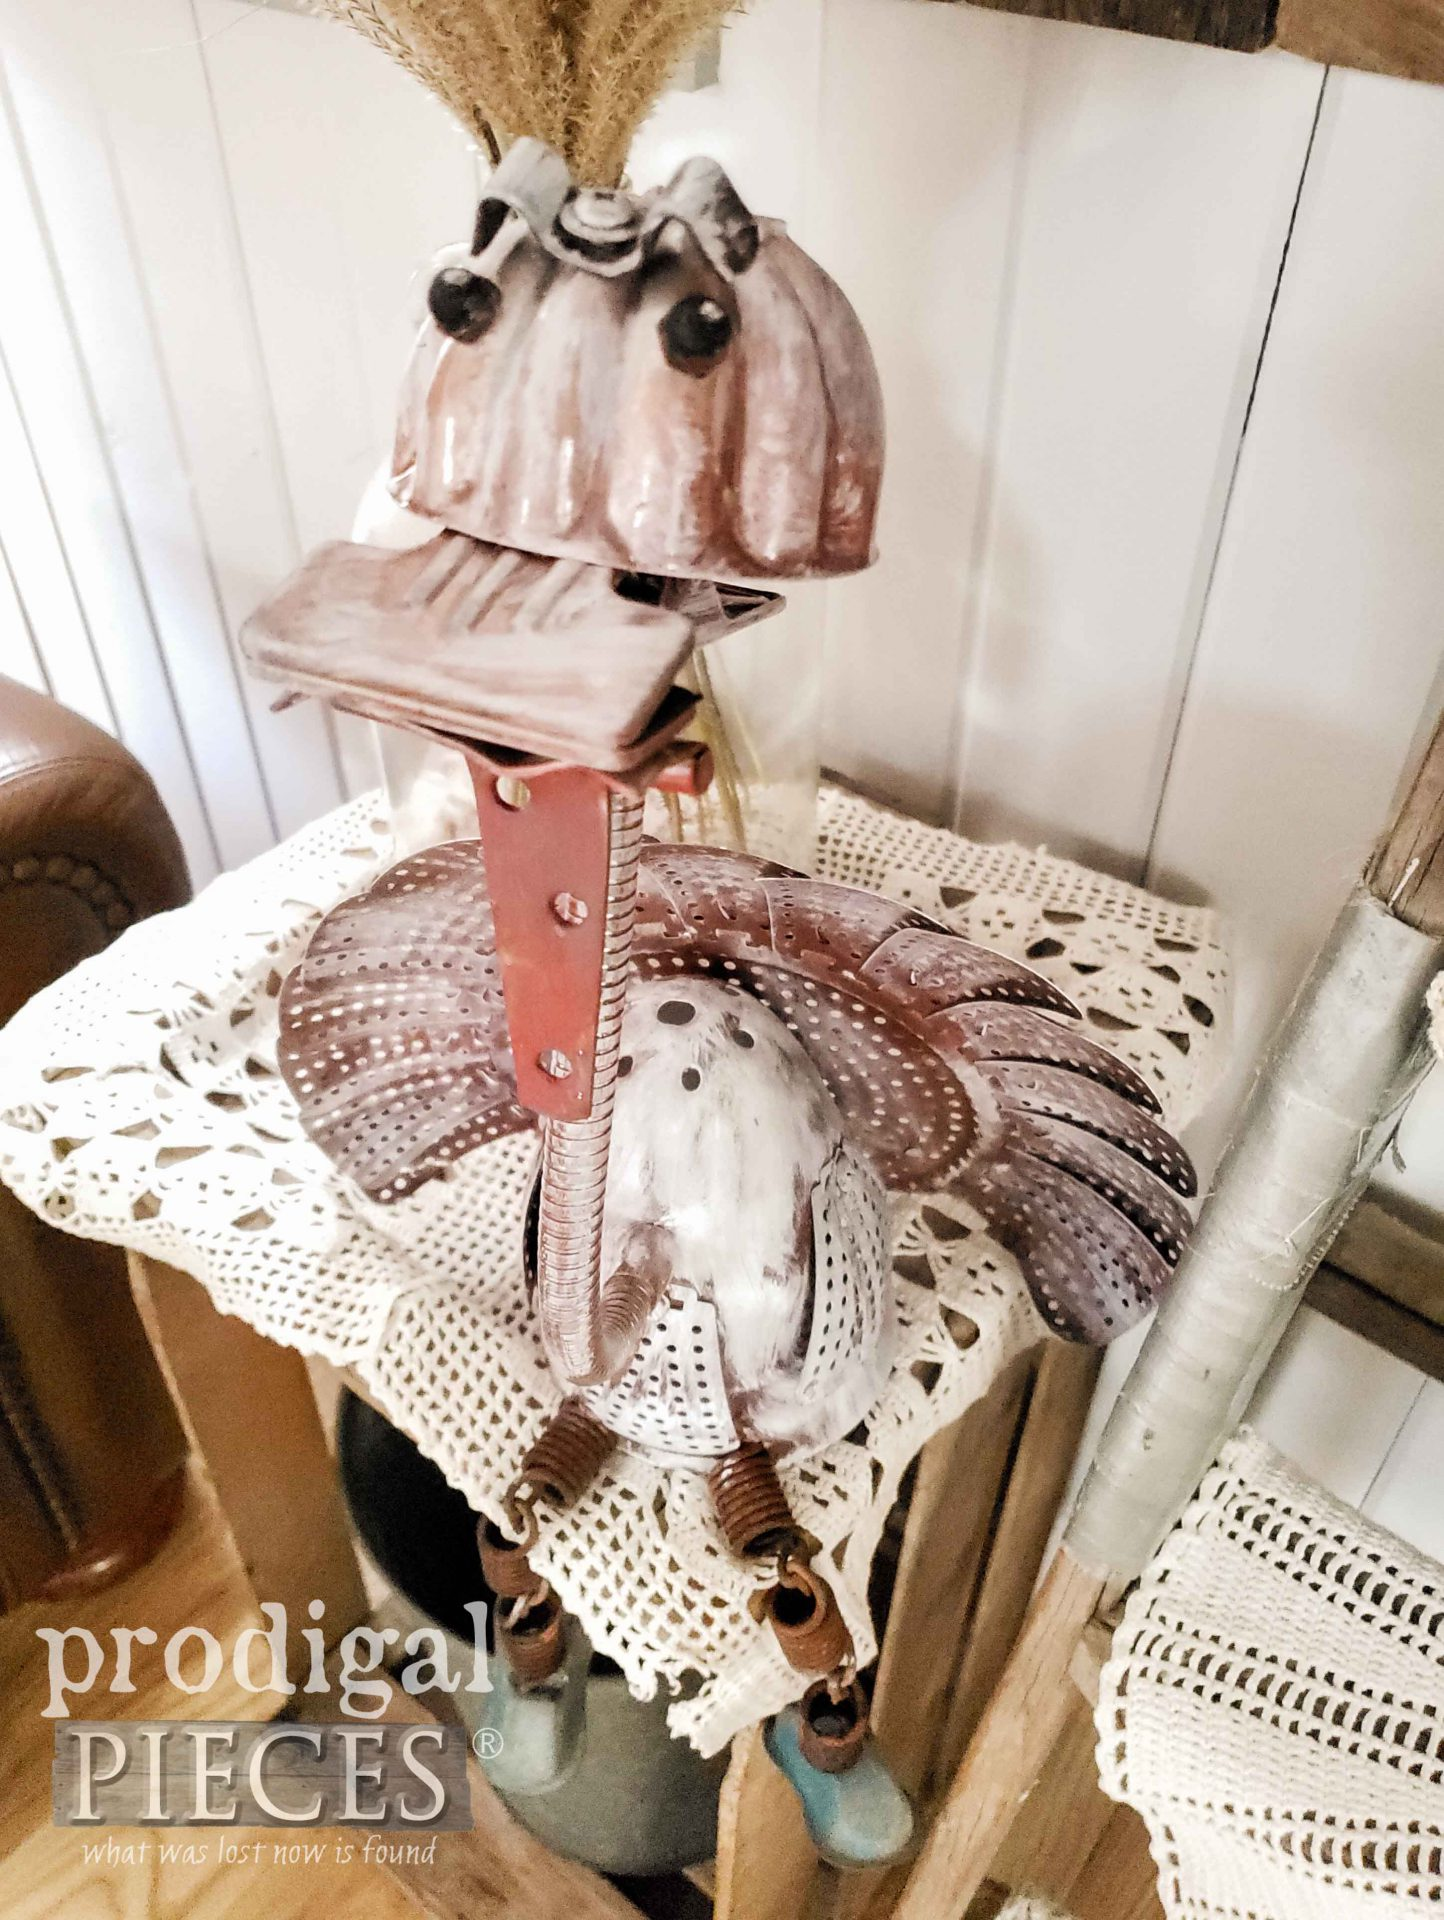 Handmade Metal Turkey Sculpture Created from Salvaged Junk by Larissa of Prodigal Pieces | prodigalpieces.com #prodigalpieces #handmade #home #art #homedecor #artist #farmhouse